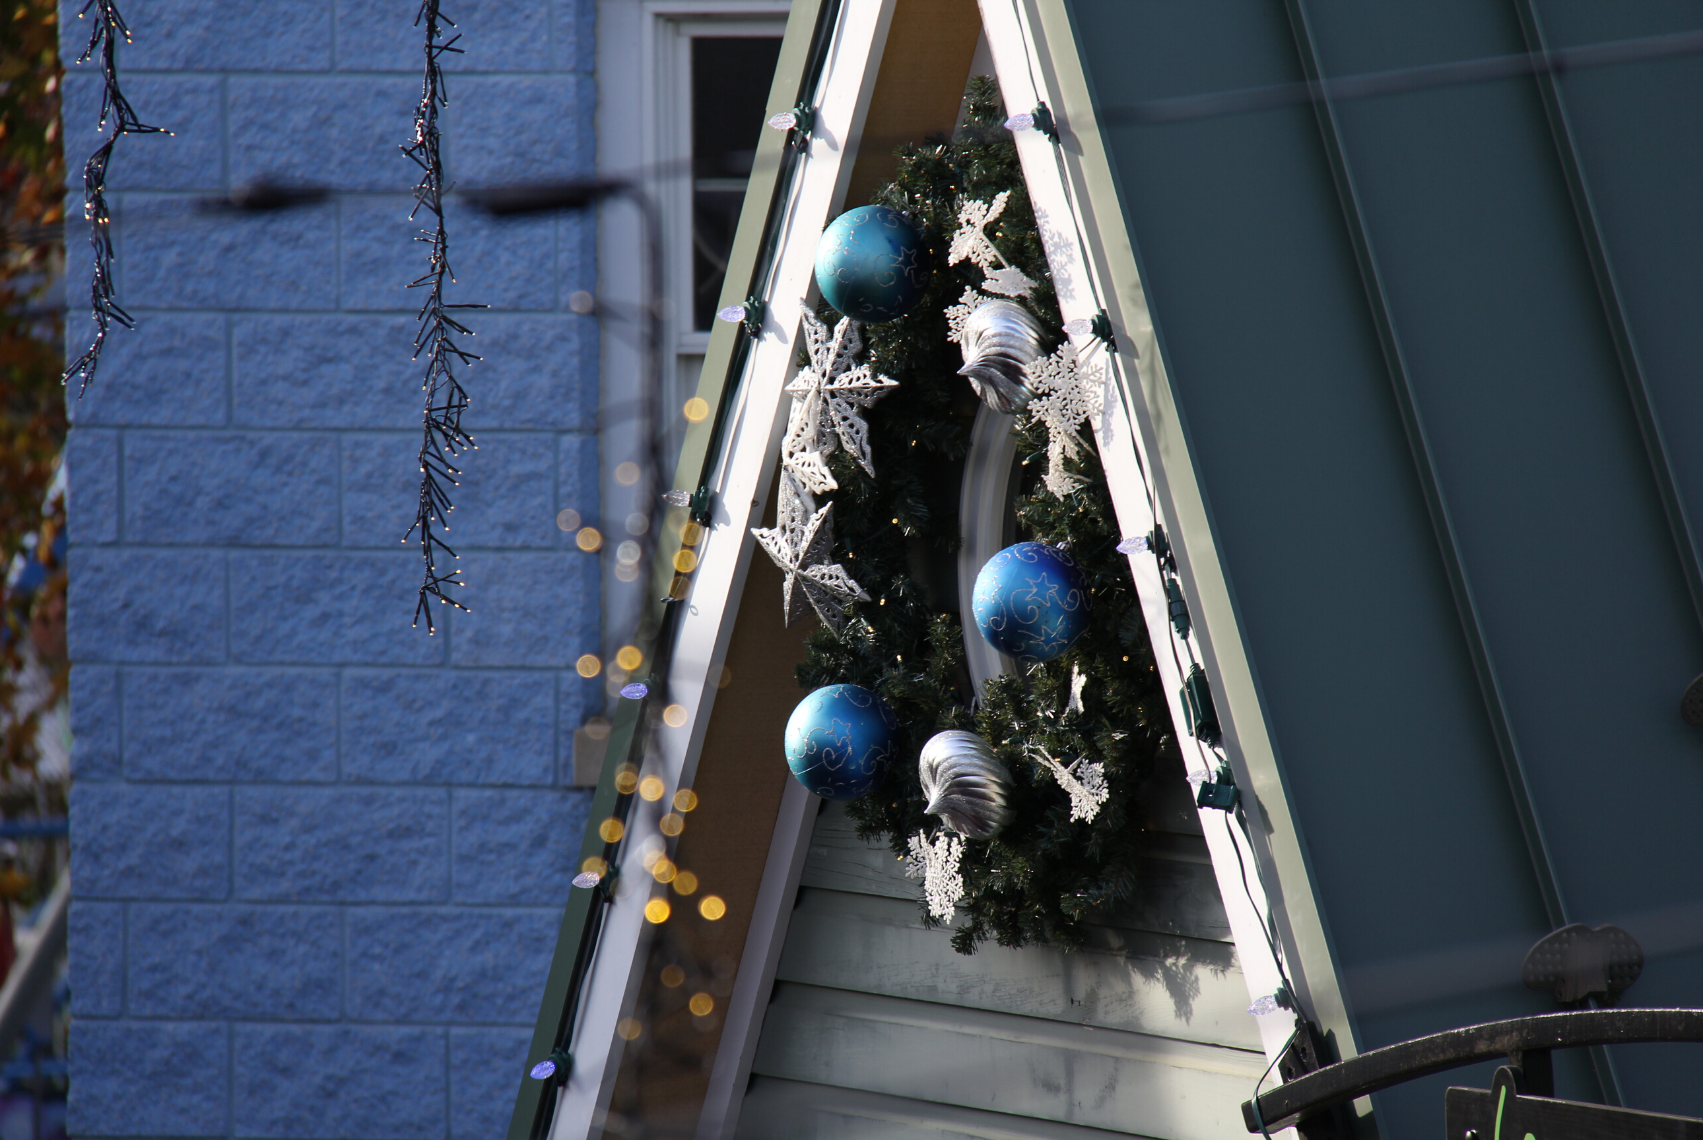 Holiday wreath on ticket booth turret